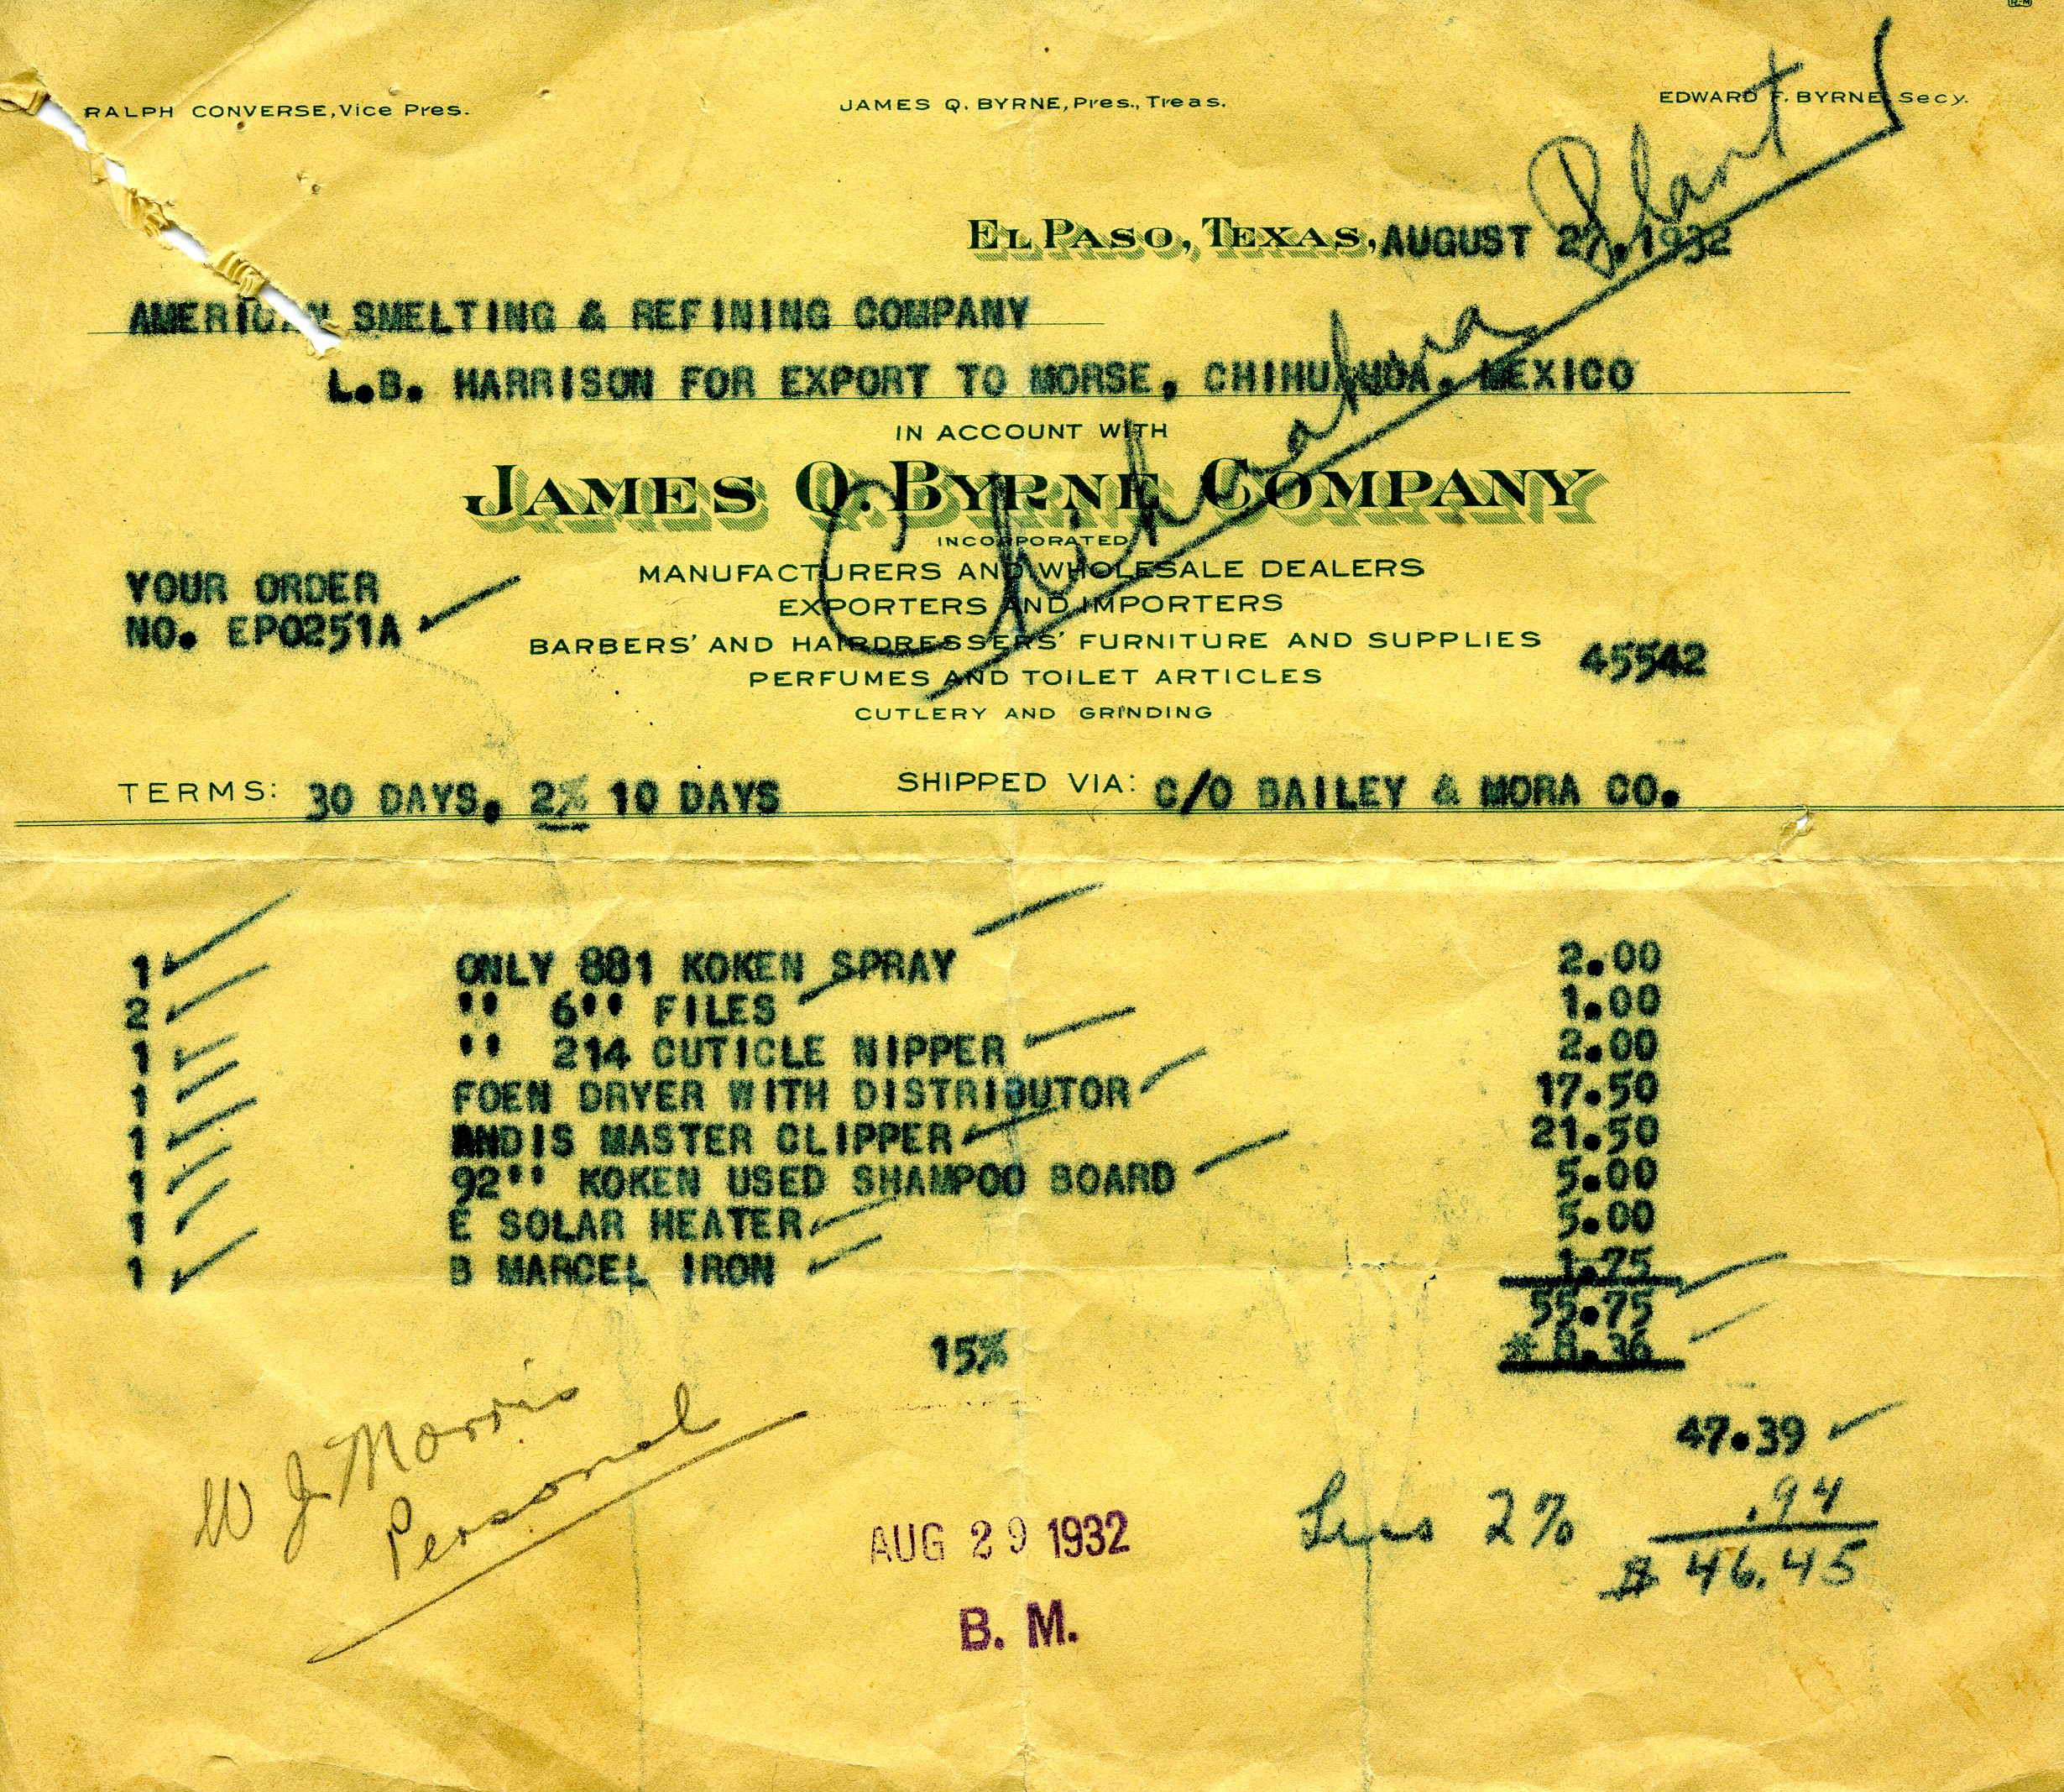 1932 Invoice for items shipped